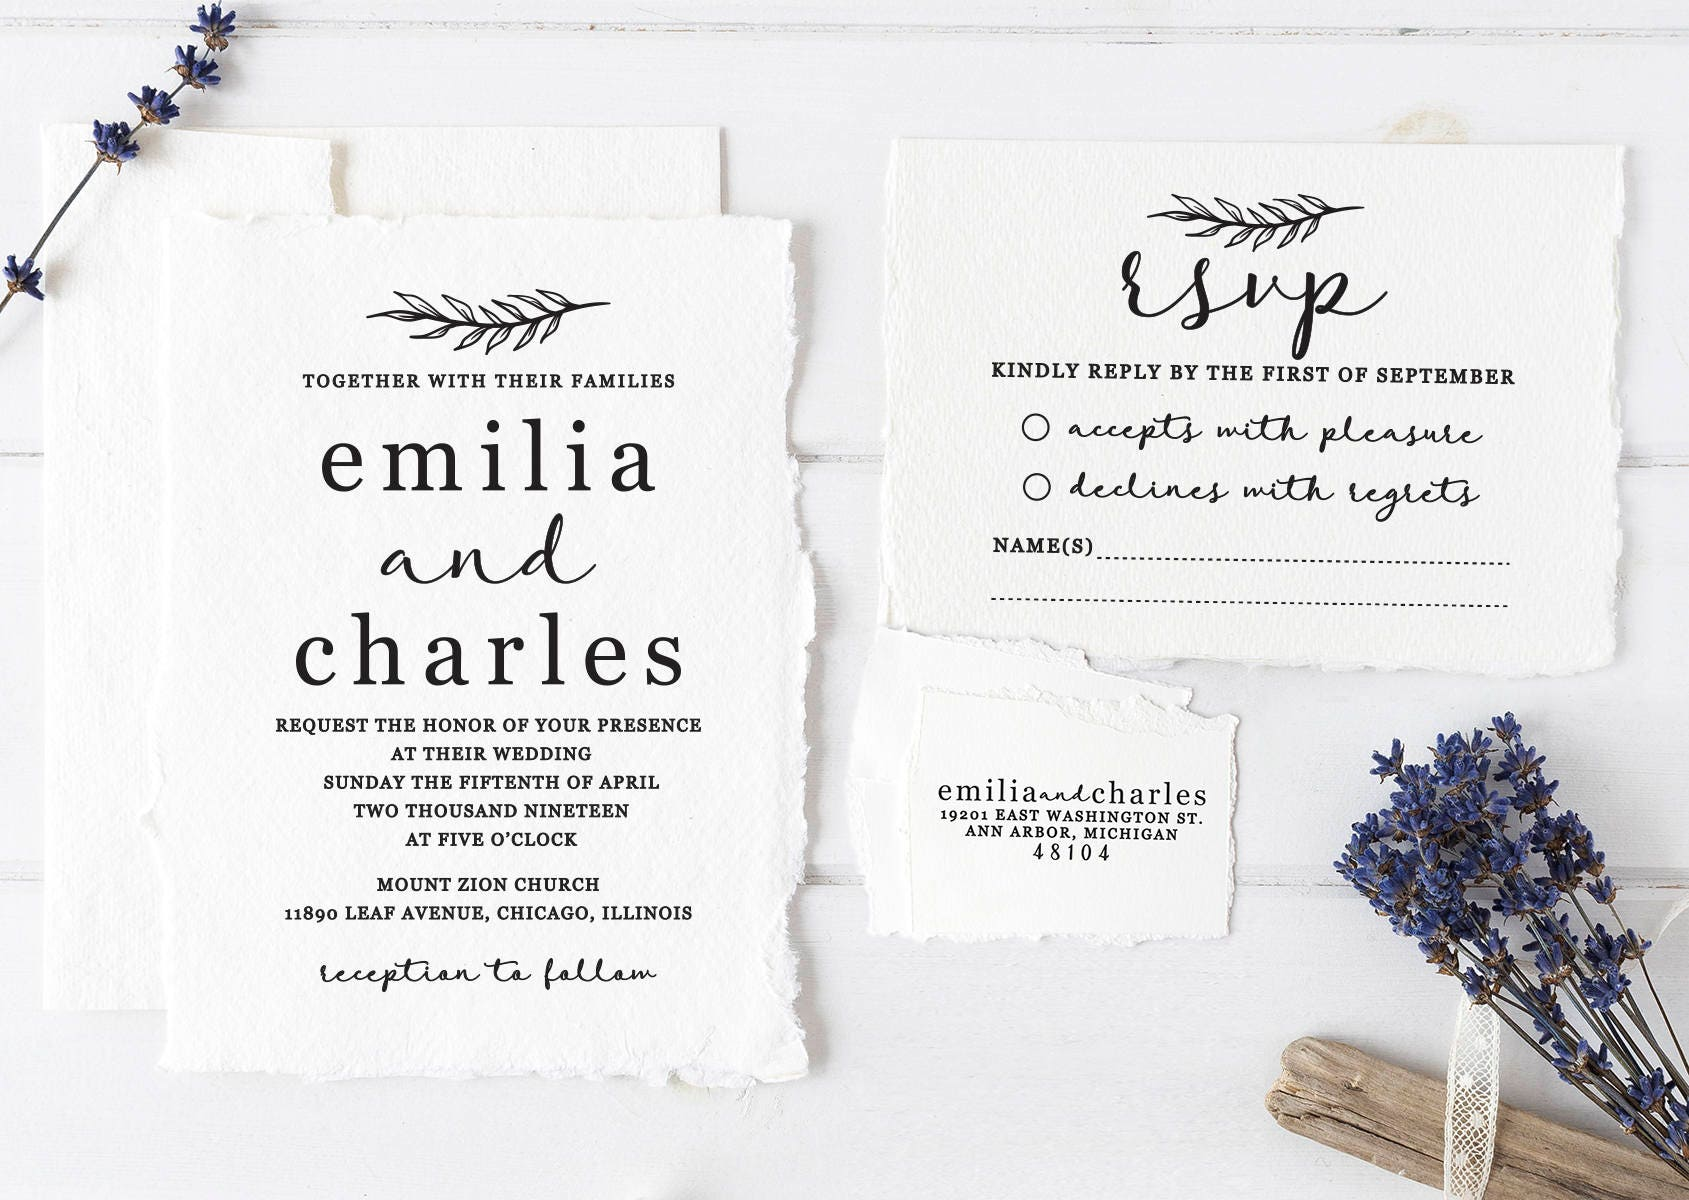 Personalized Stamps For Wedding Invitations: Wedding Invitation Stamp Suite. Custom Wedding Stamps.